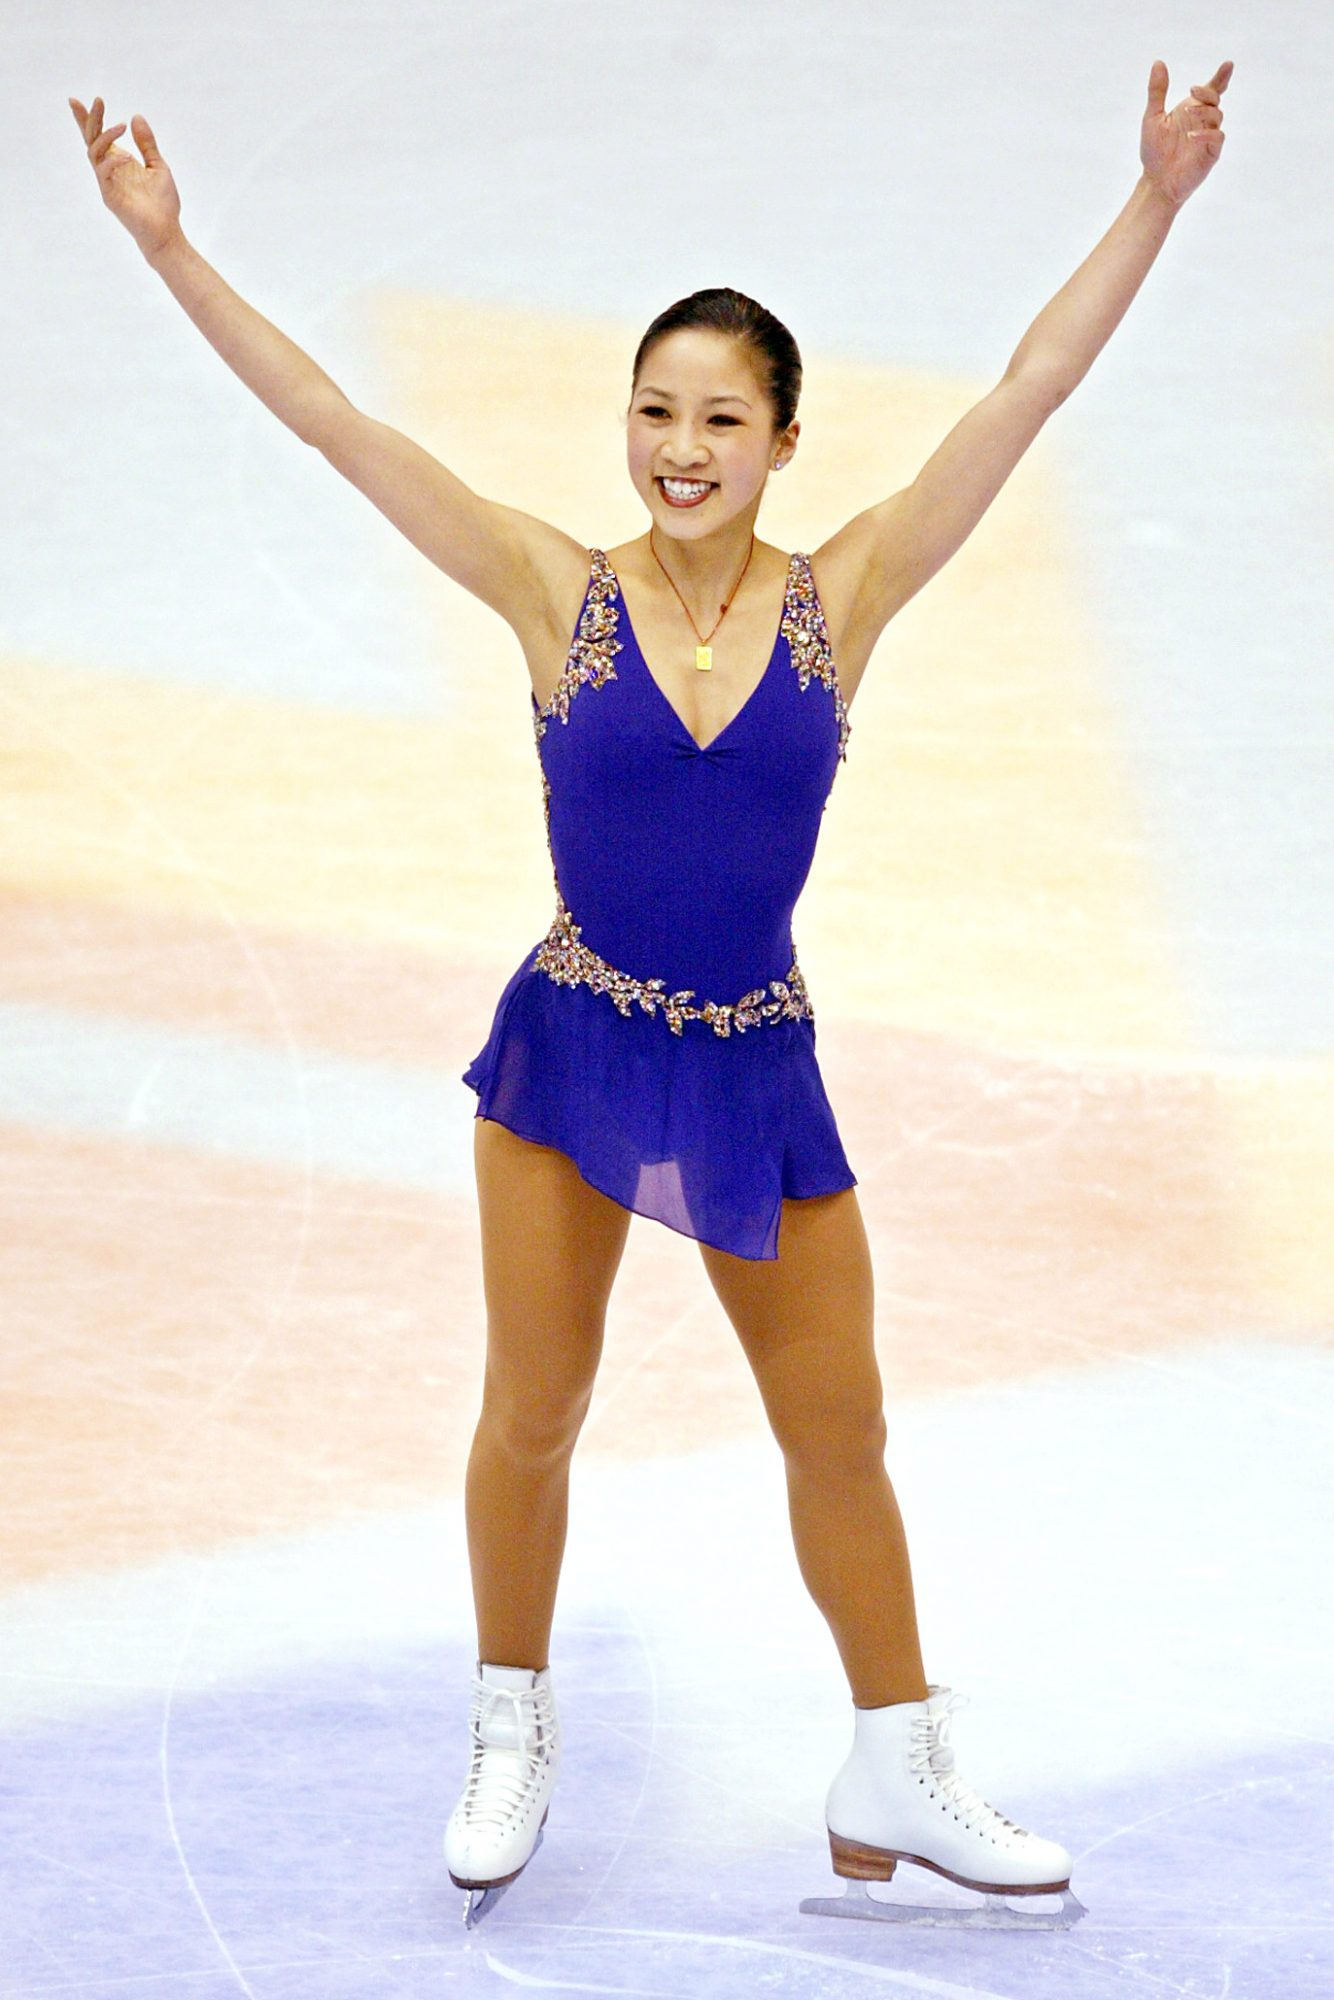 Michelle Kwan (1998 Olympic Silver Medalist, 2002 Olympic Bronze Medalist)